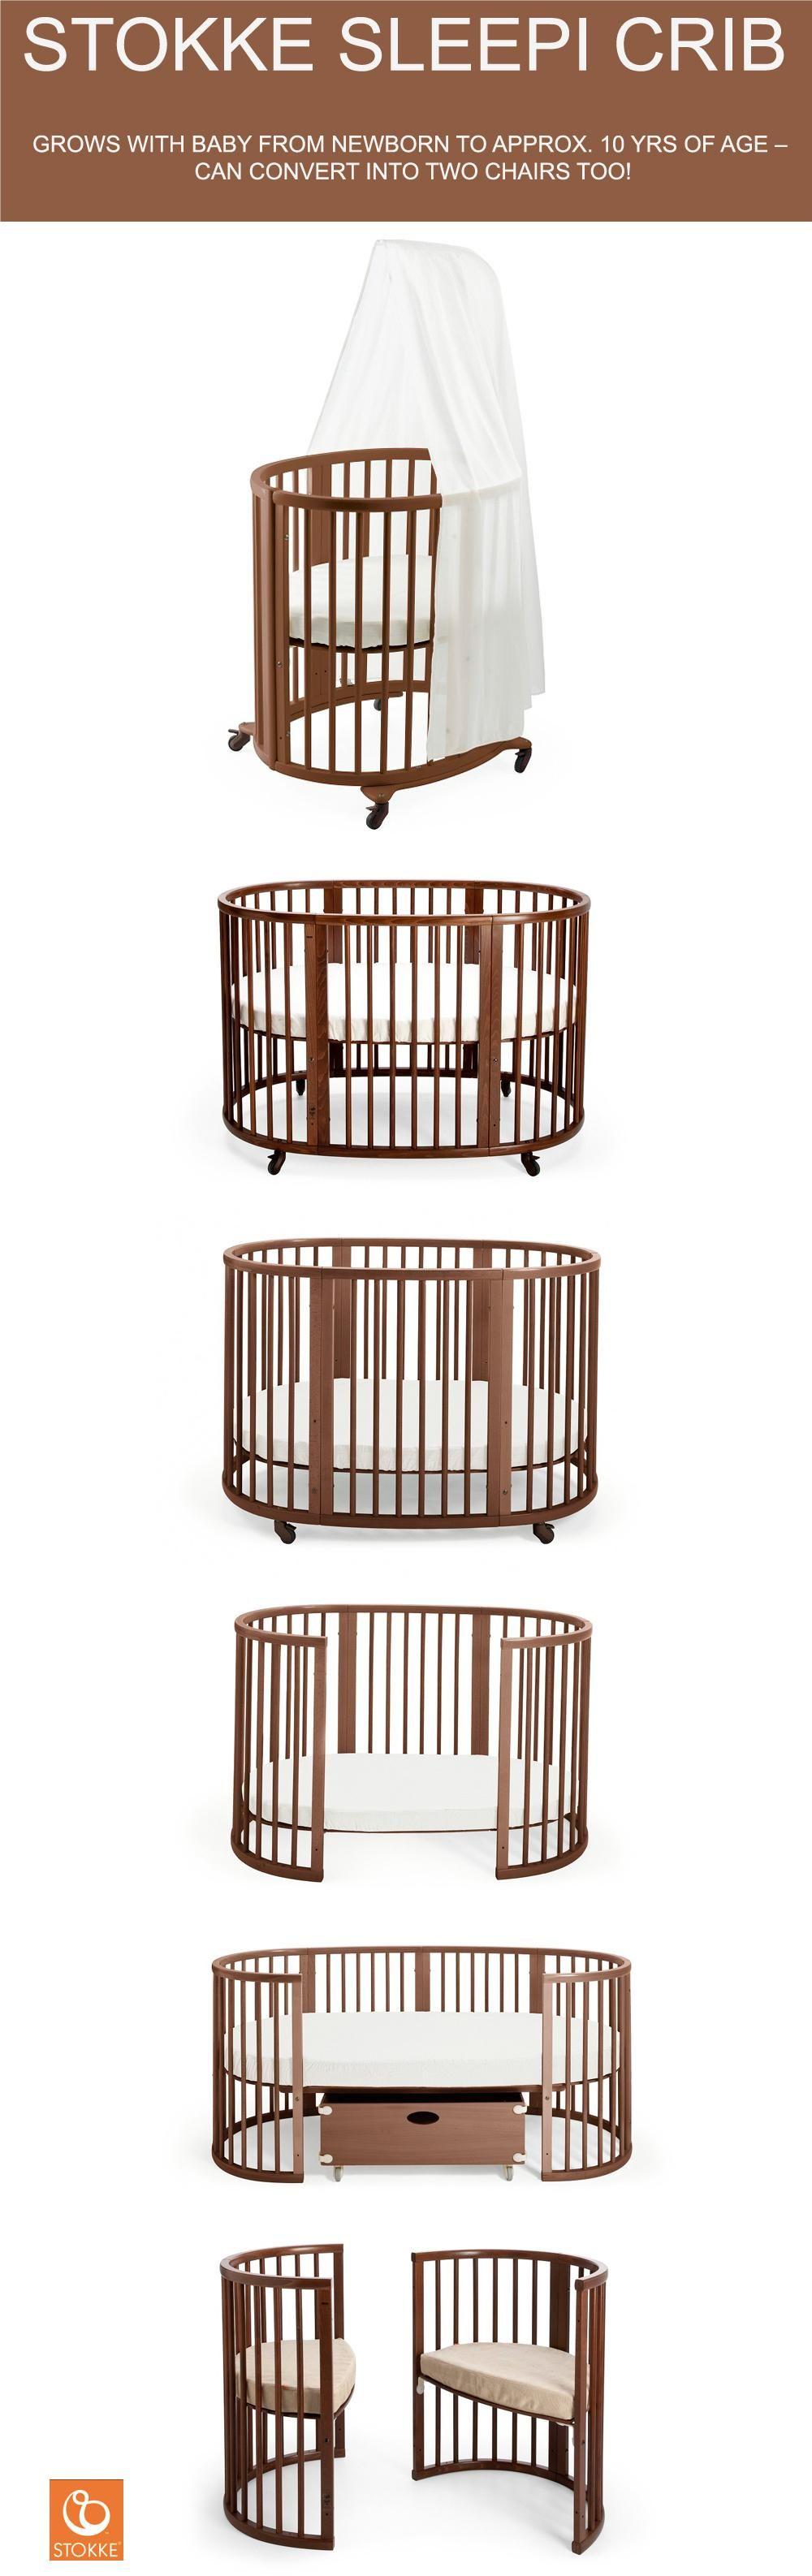 Baby cribs richmond va - A Crib That Expands With Extension Kit With Your Baby To Meet Their Changing Needs Size Scandinavian Design For Your Child S Nursery Buy Online